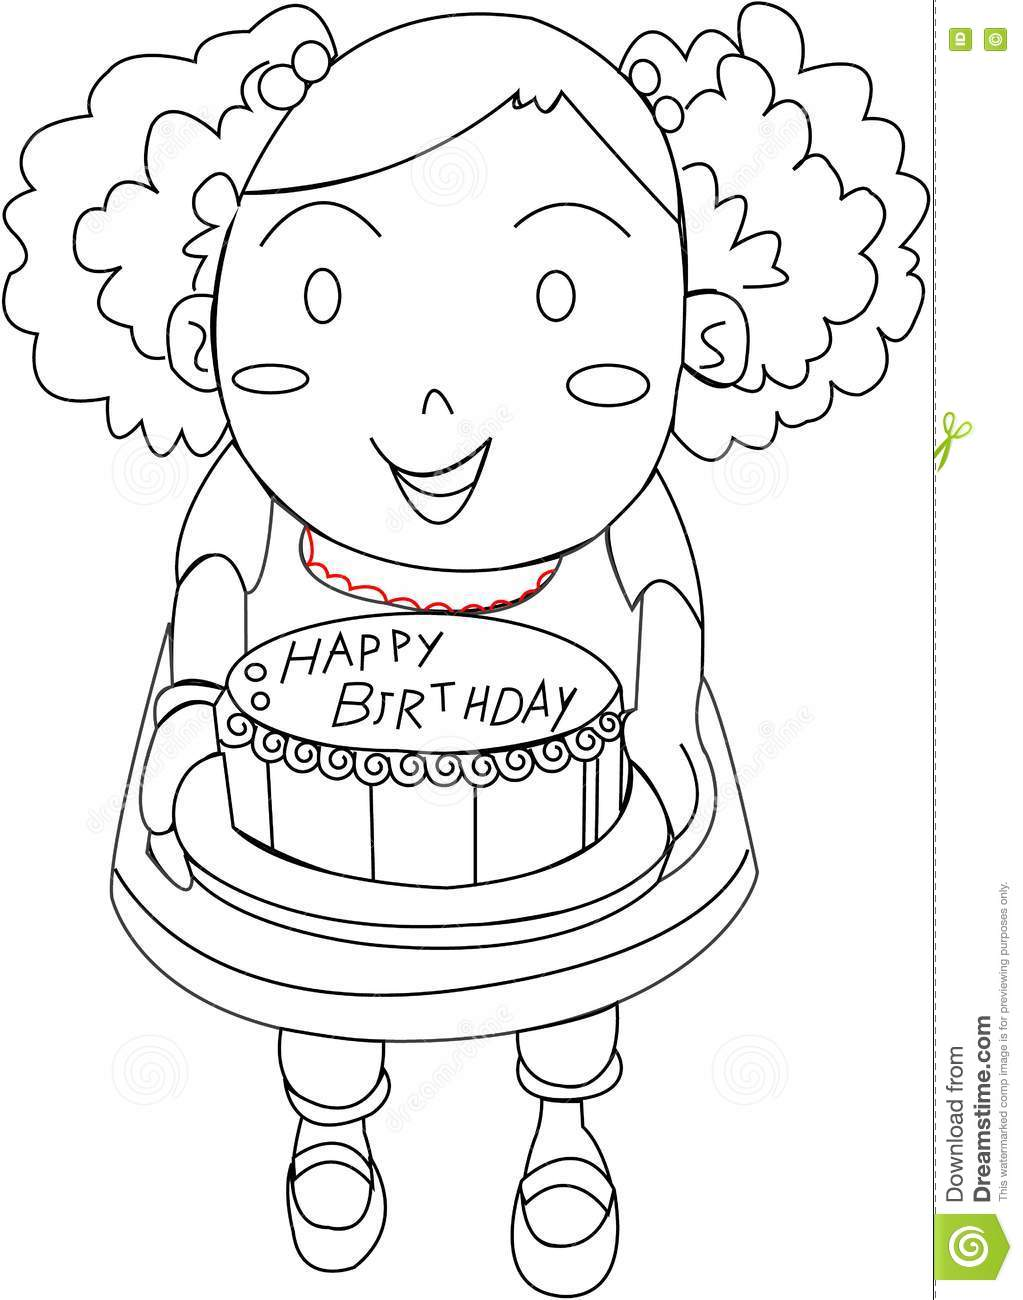 Galerry fruit cake coloring pages